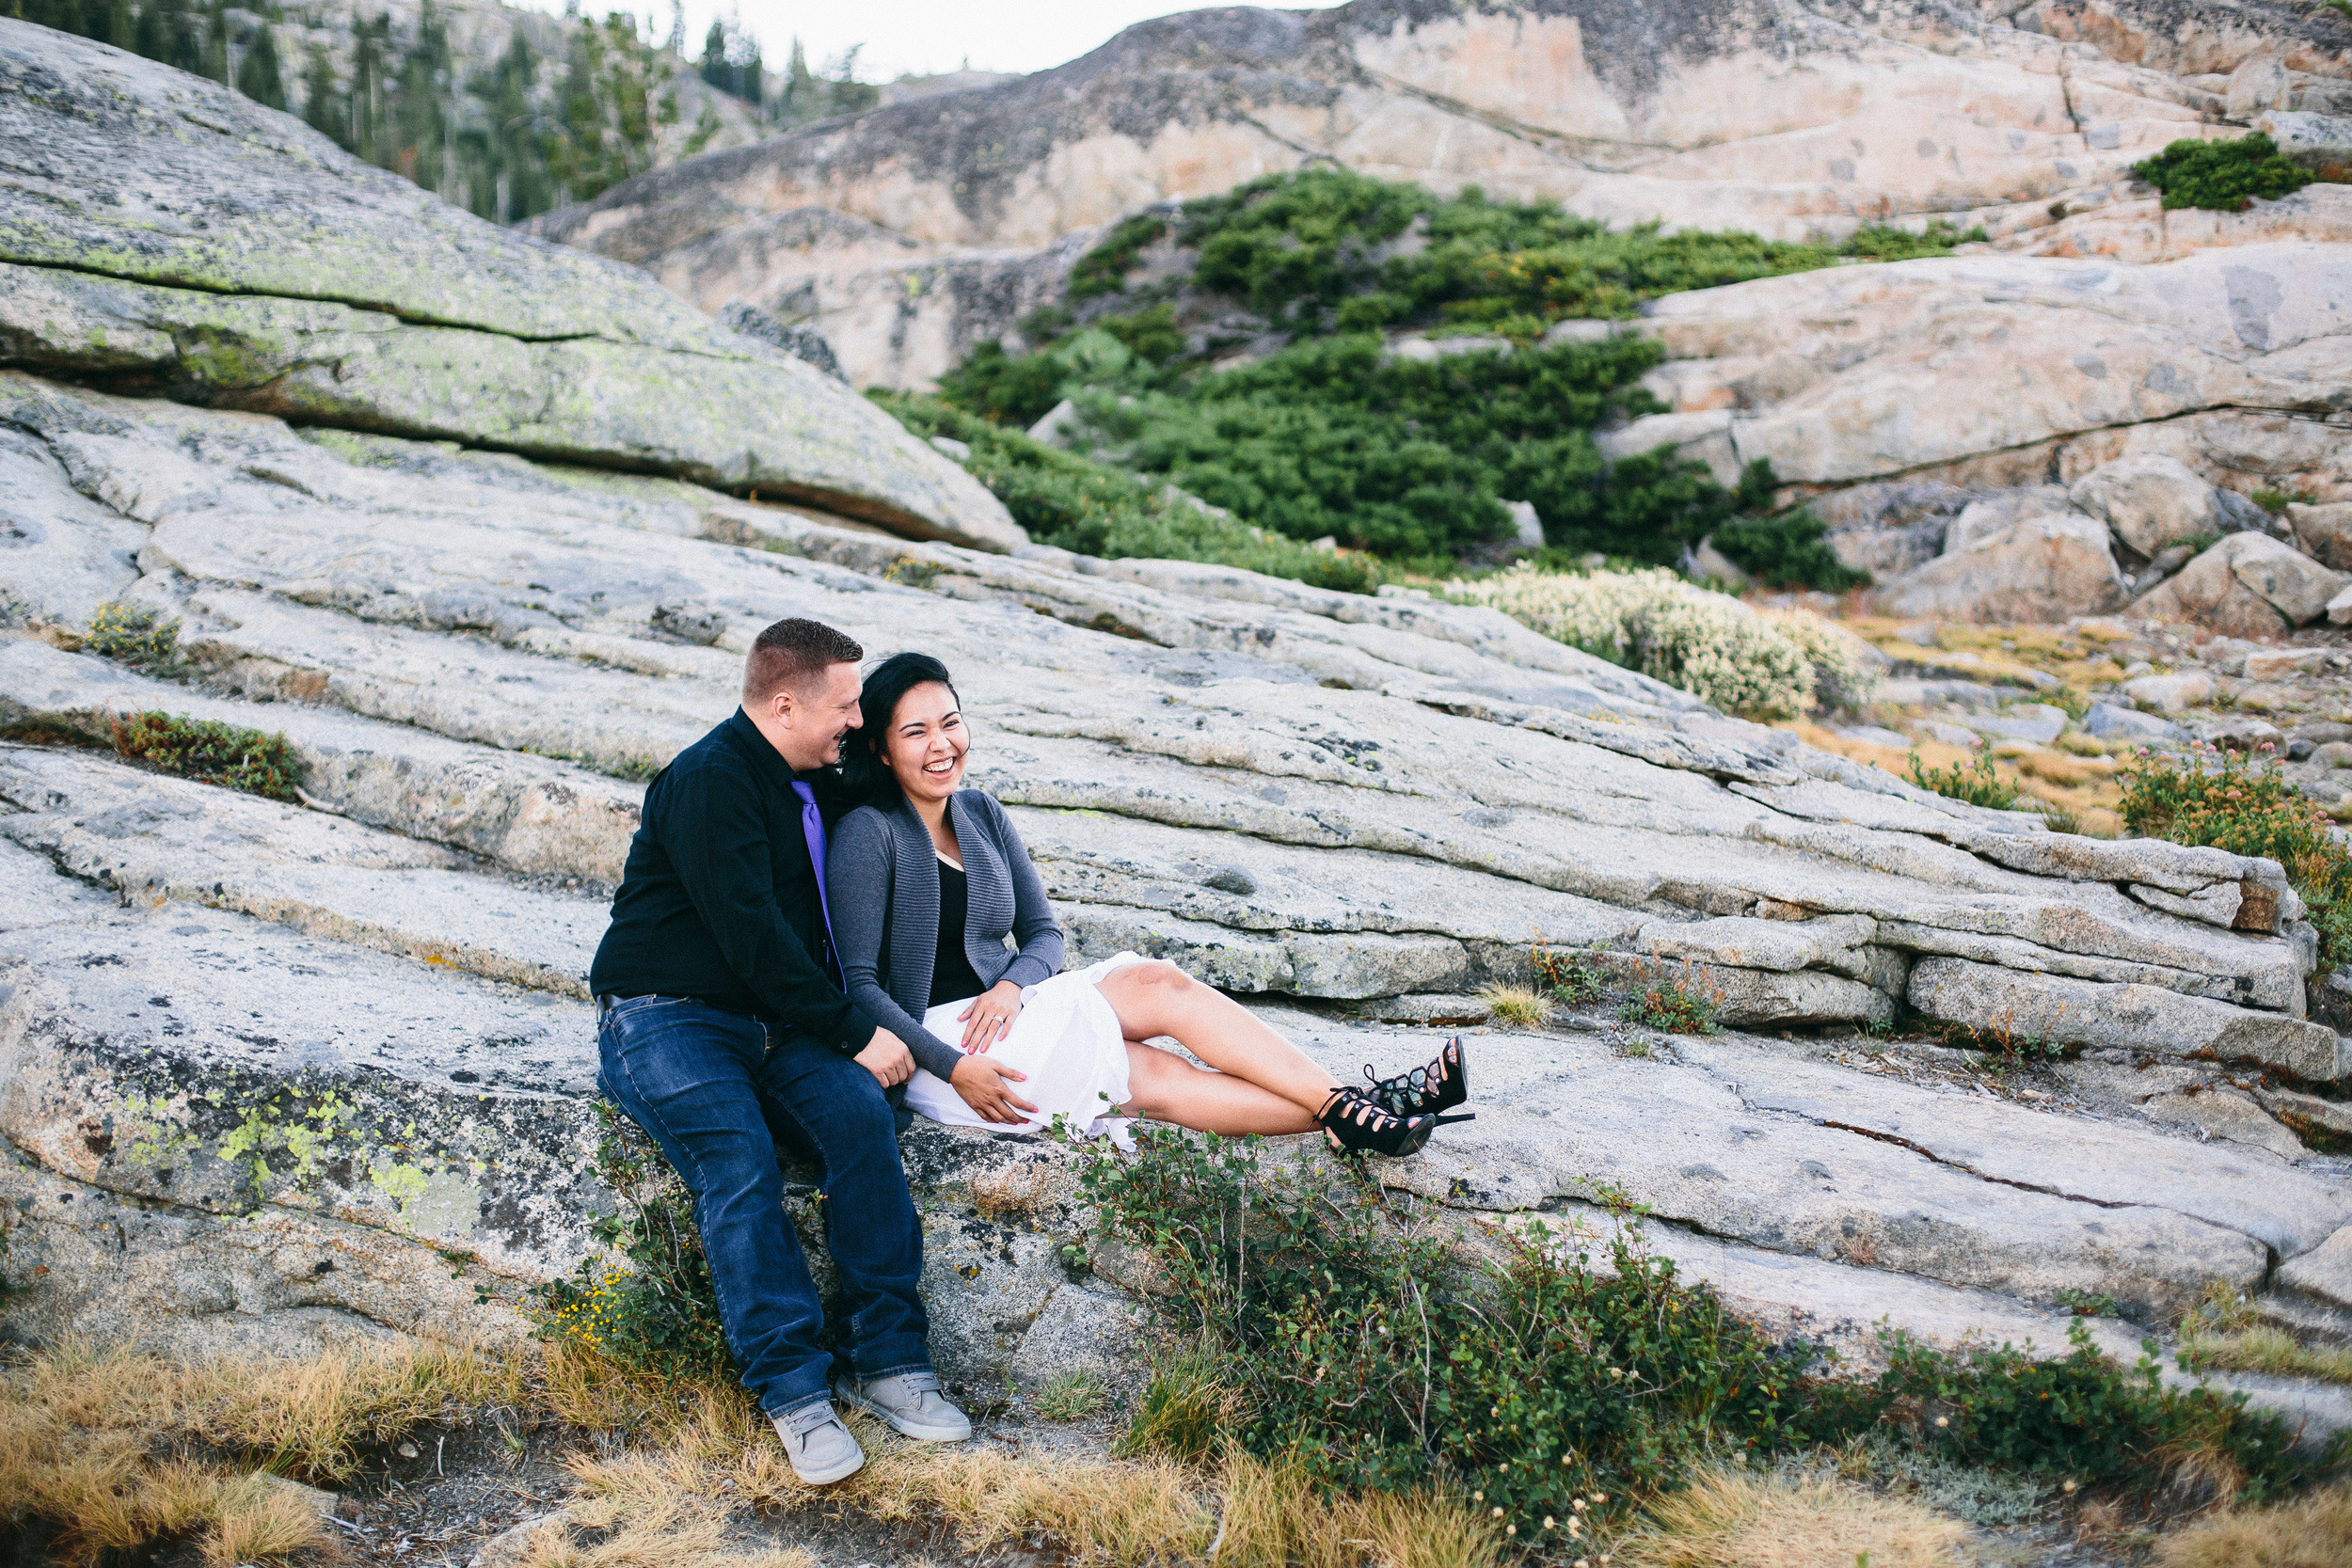 Clint & Veronica's Proposal - Corrie Mick Photography-69.jpg